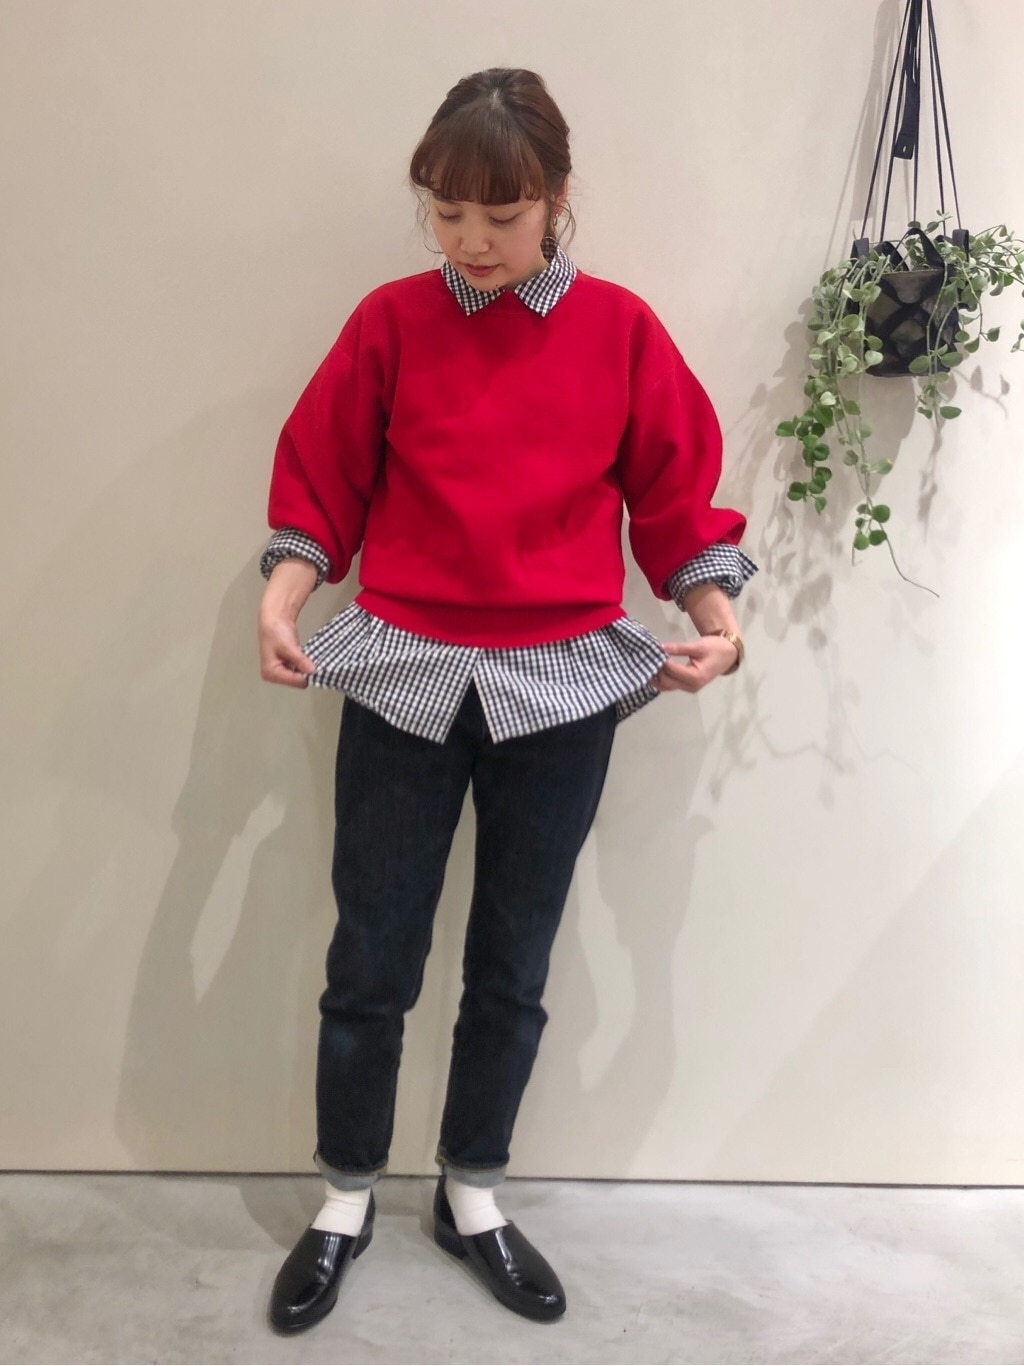 Dot and Stripes CHILD WOMAN CHILD WOMAN , PAR ICI 新宿ミロード 身長:160cm 2021.01.26